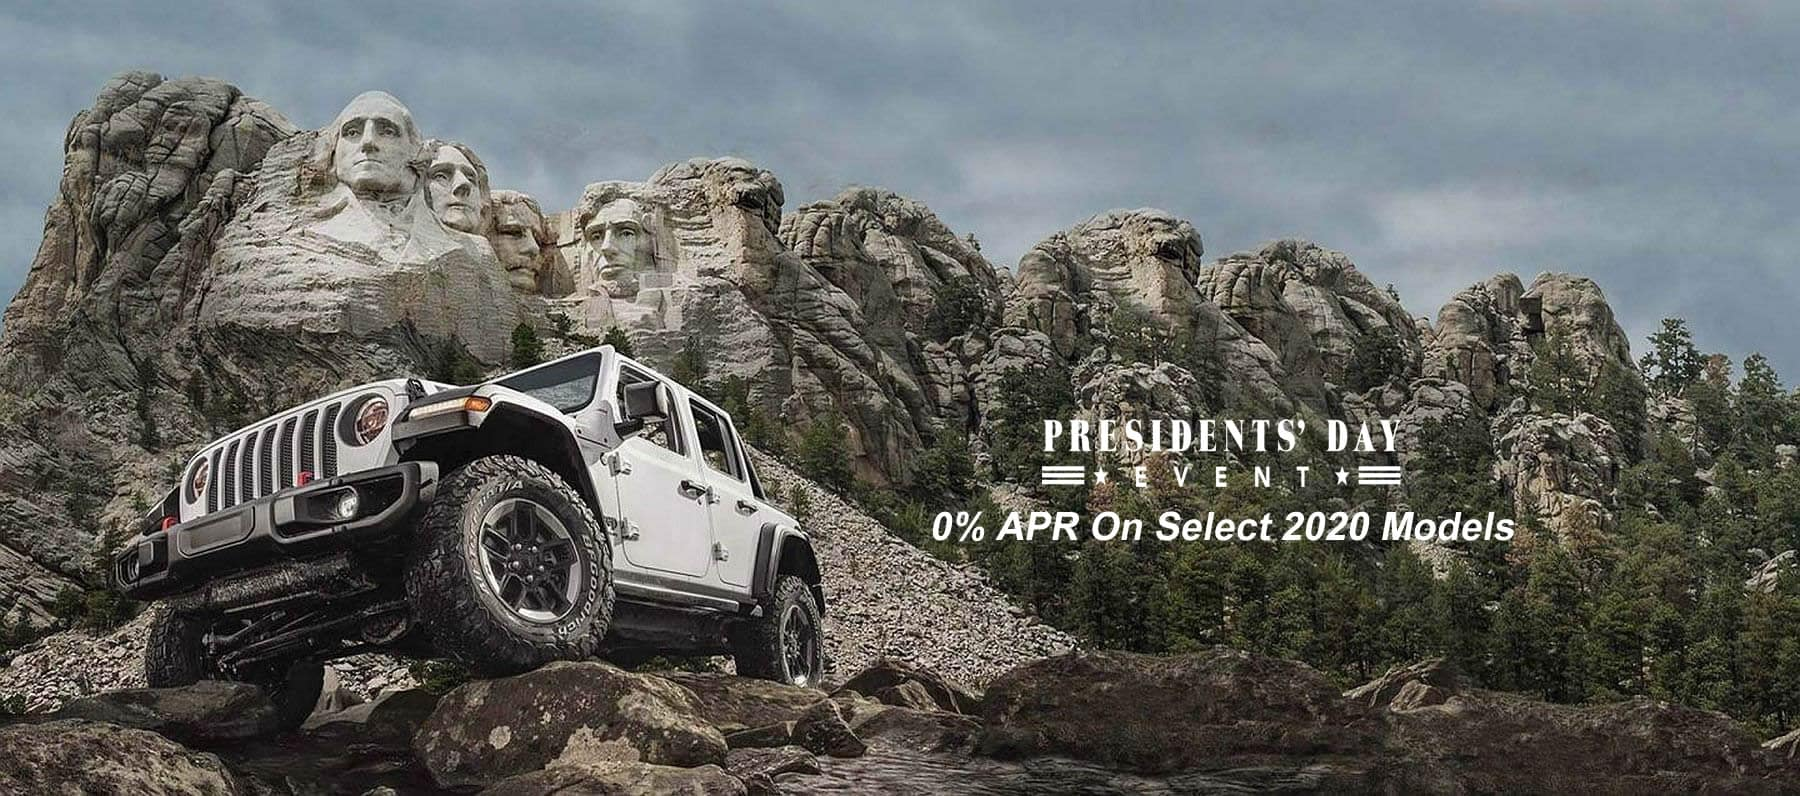 0% APR On Select New 2020 Models